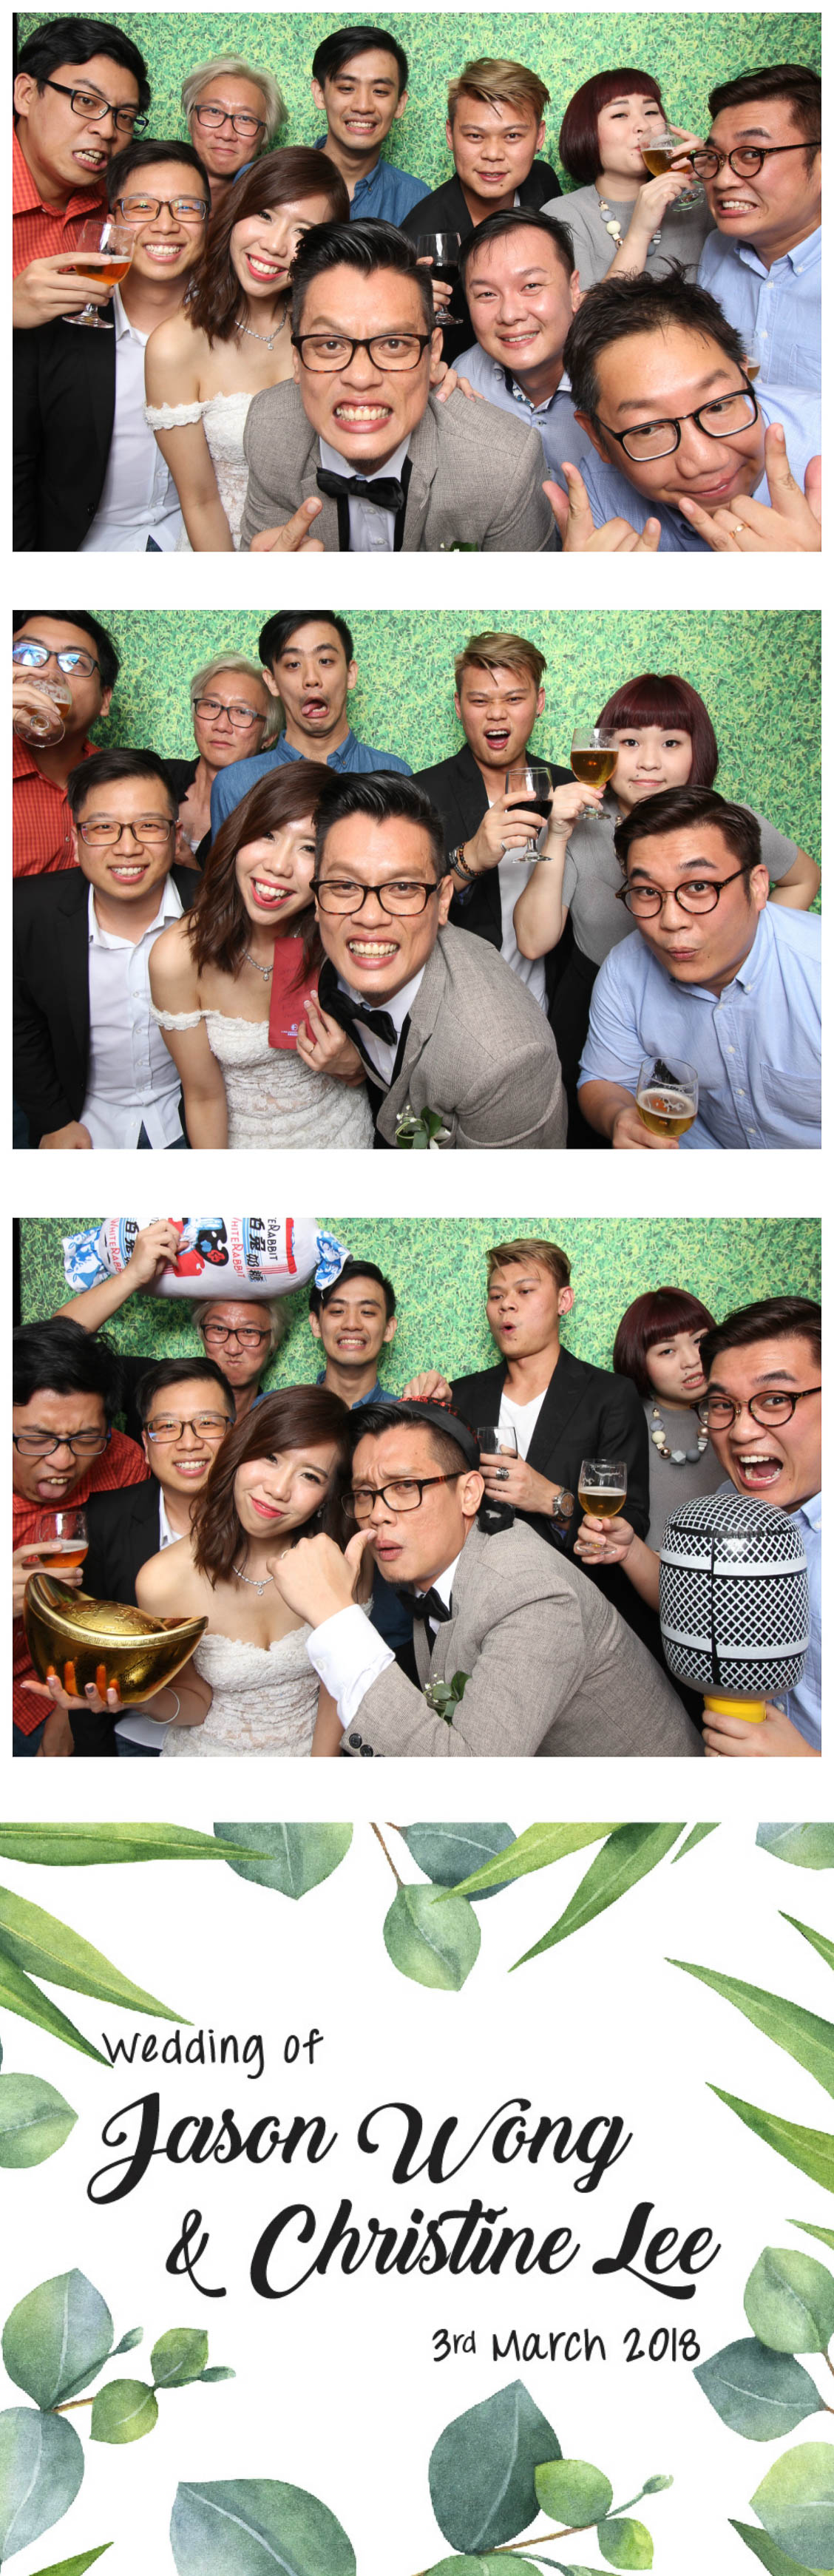 Photobooth 0302-53